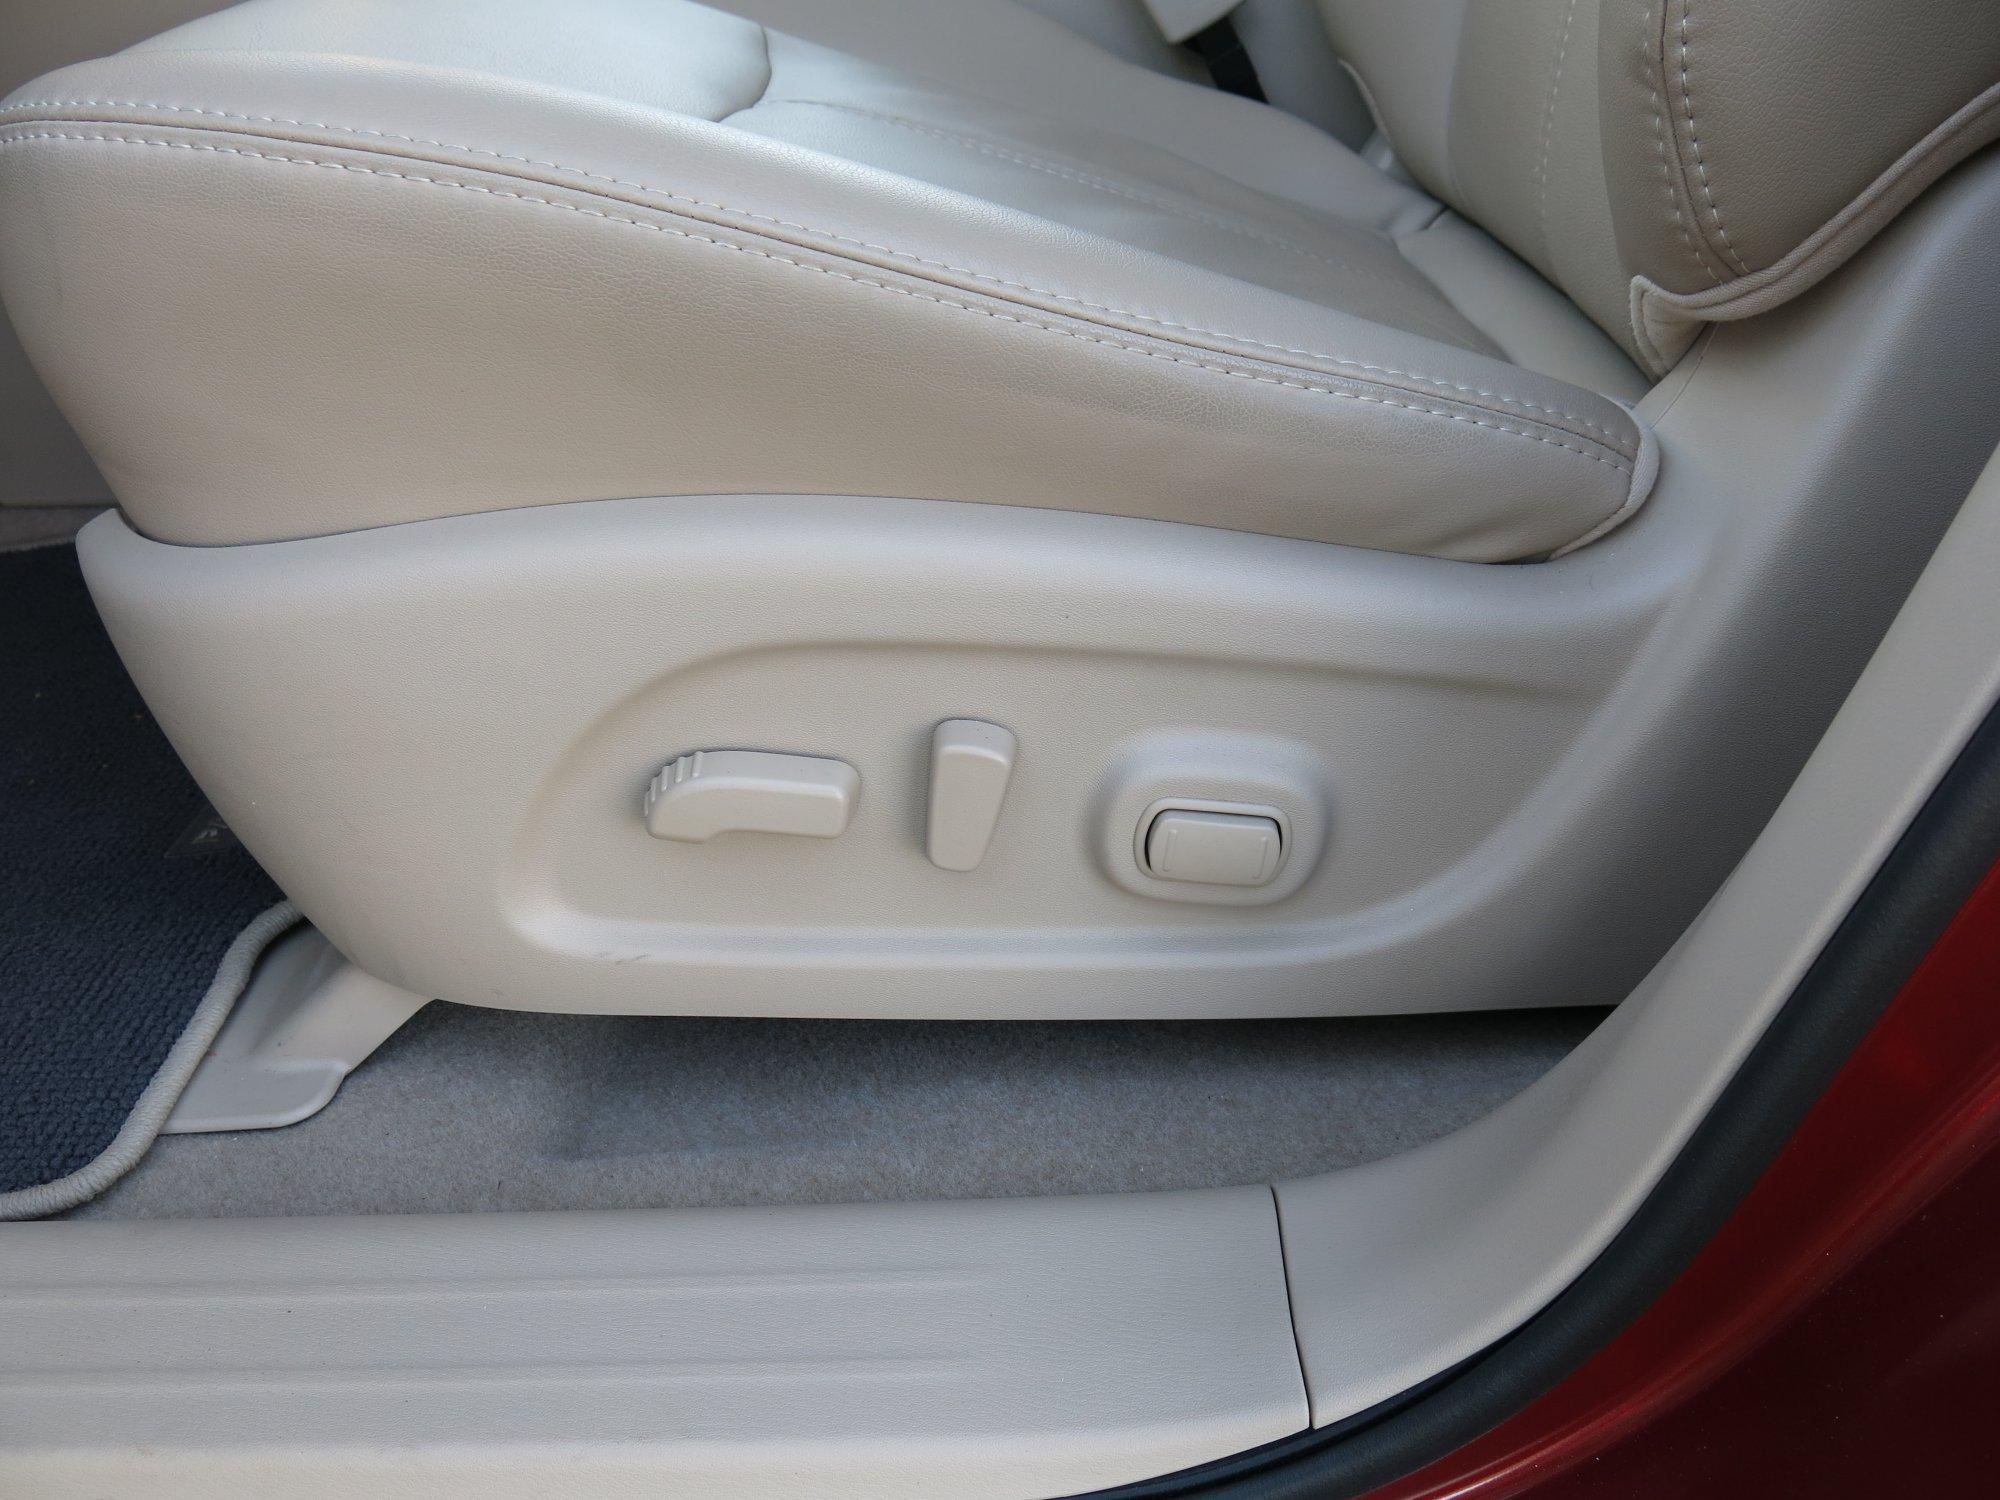 Most newer vehicles will be fitted with power seats. There are often 3 controls: 1) back & forth; 2) tilt of the seat back; 3) tilting of the seat cushion.